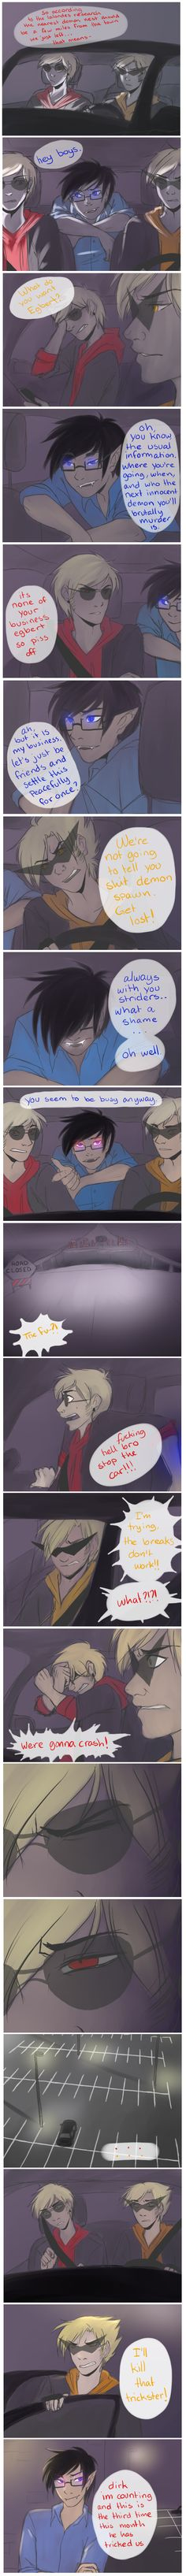 Demonstuck AU by Wolfpainters on tumblr. Dave and Dirk Strider and demon John Egbert. (Aka John being a prankloving asshole.)